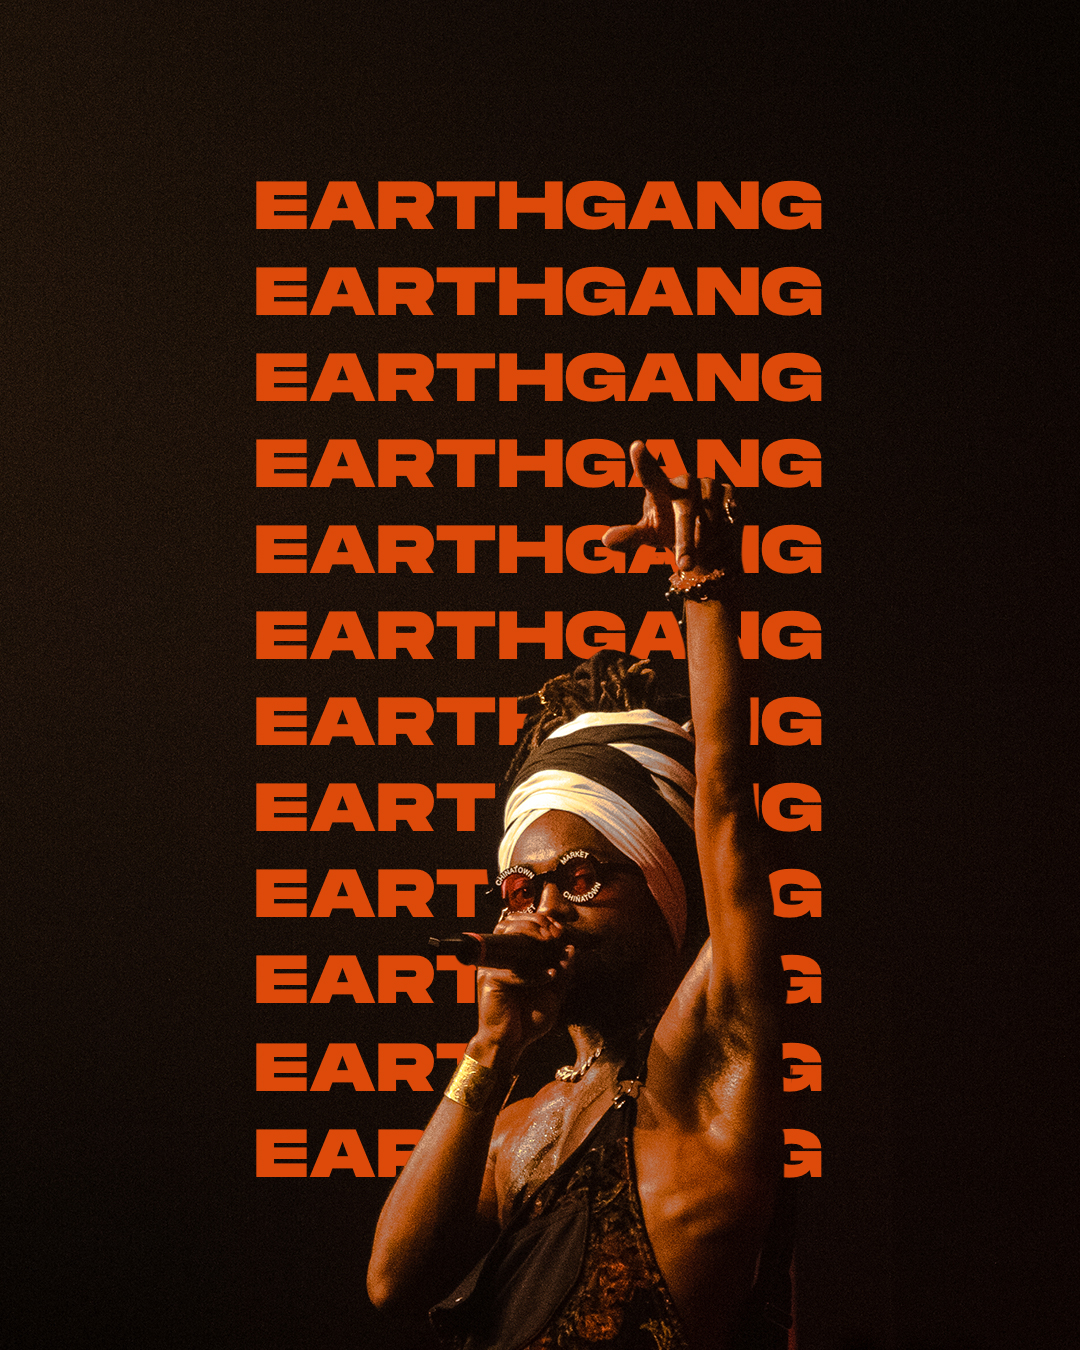 Earthgang-Instagrampost1